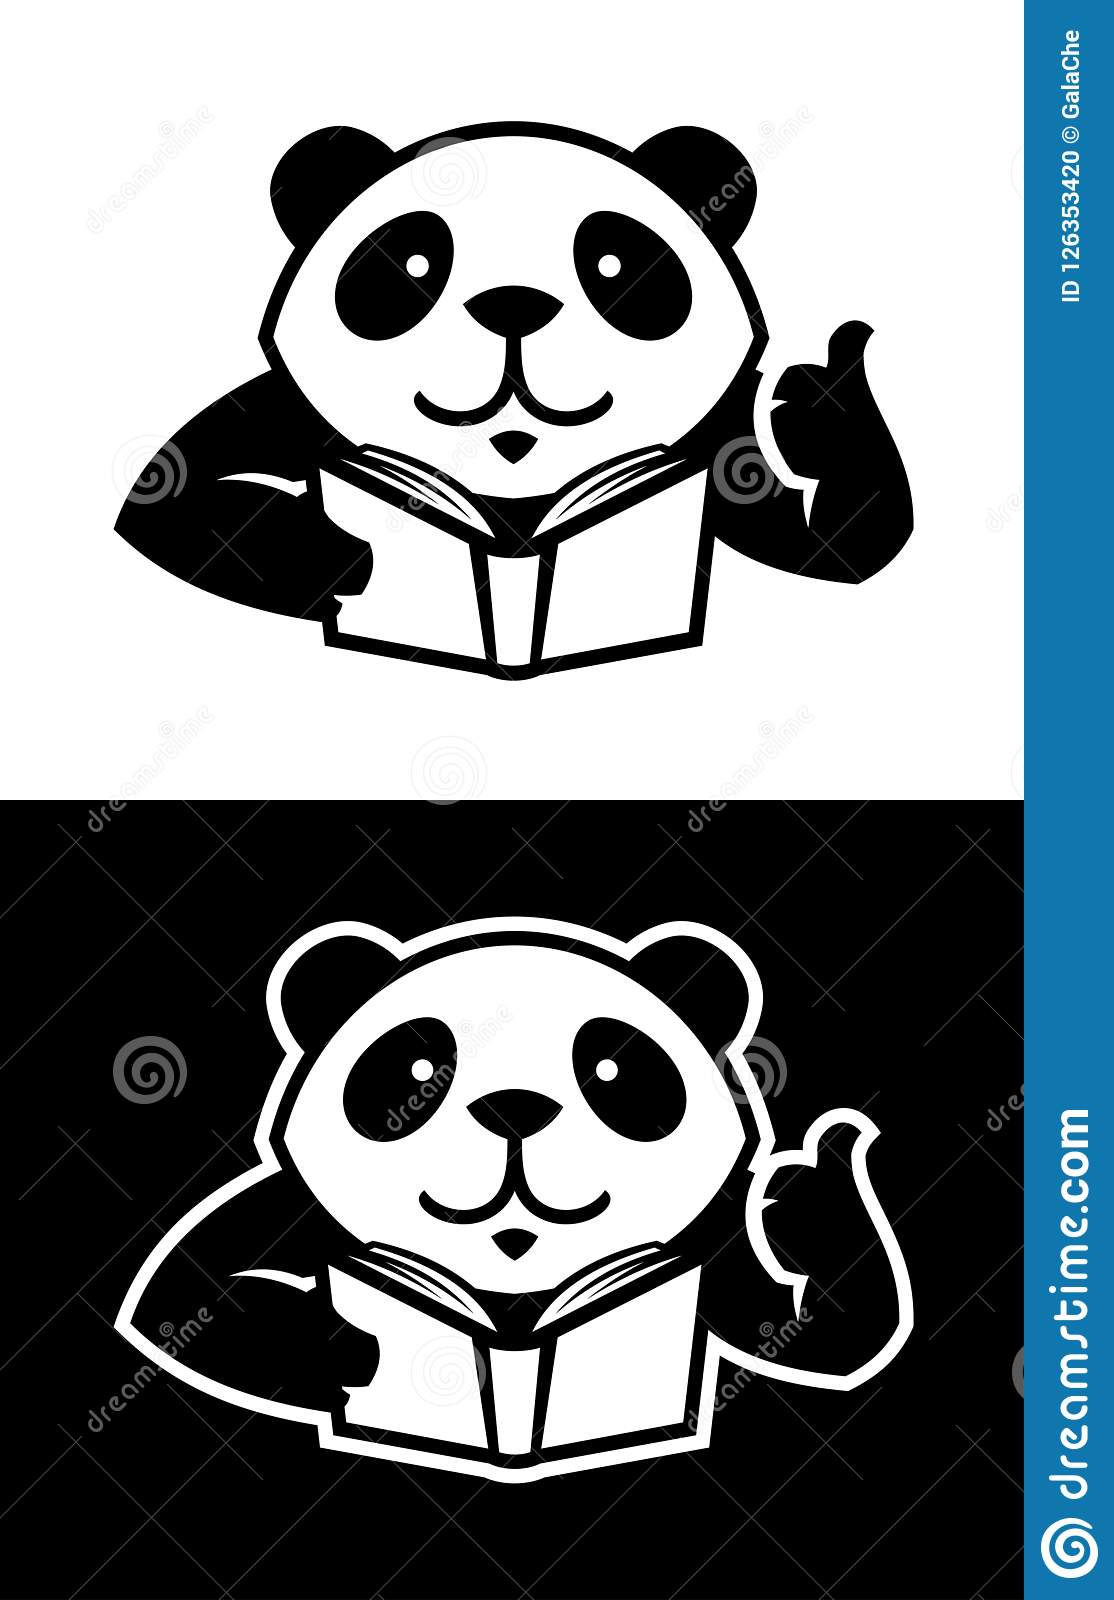 Panda character with book cut out silhouette